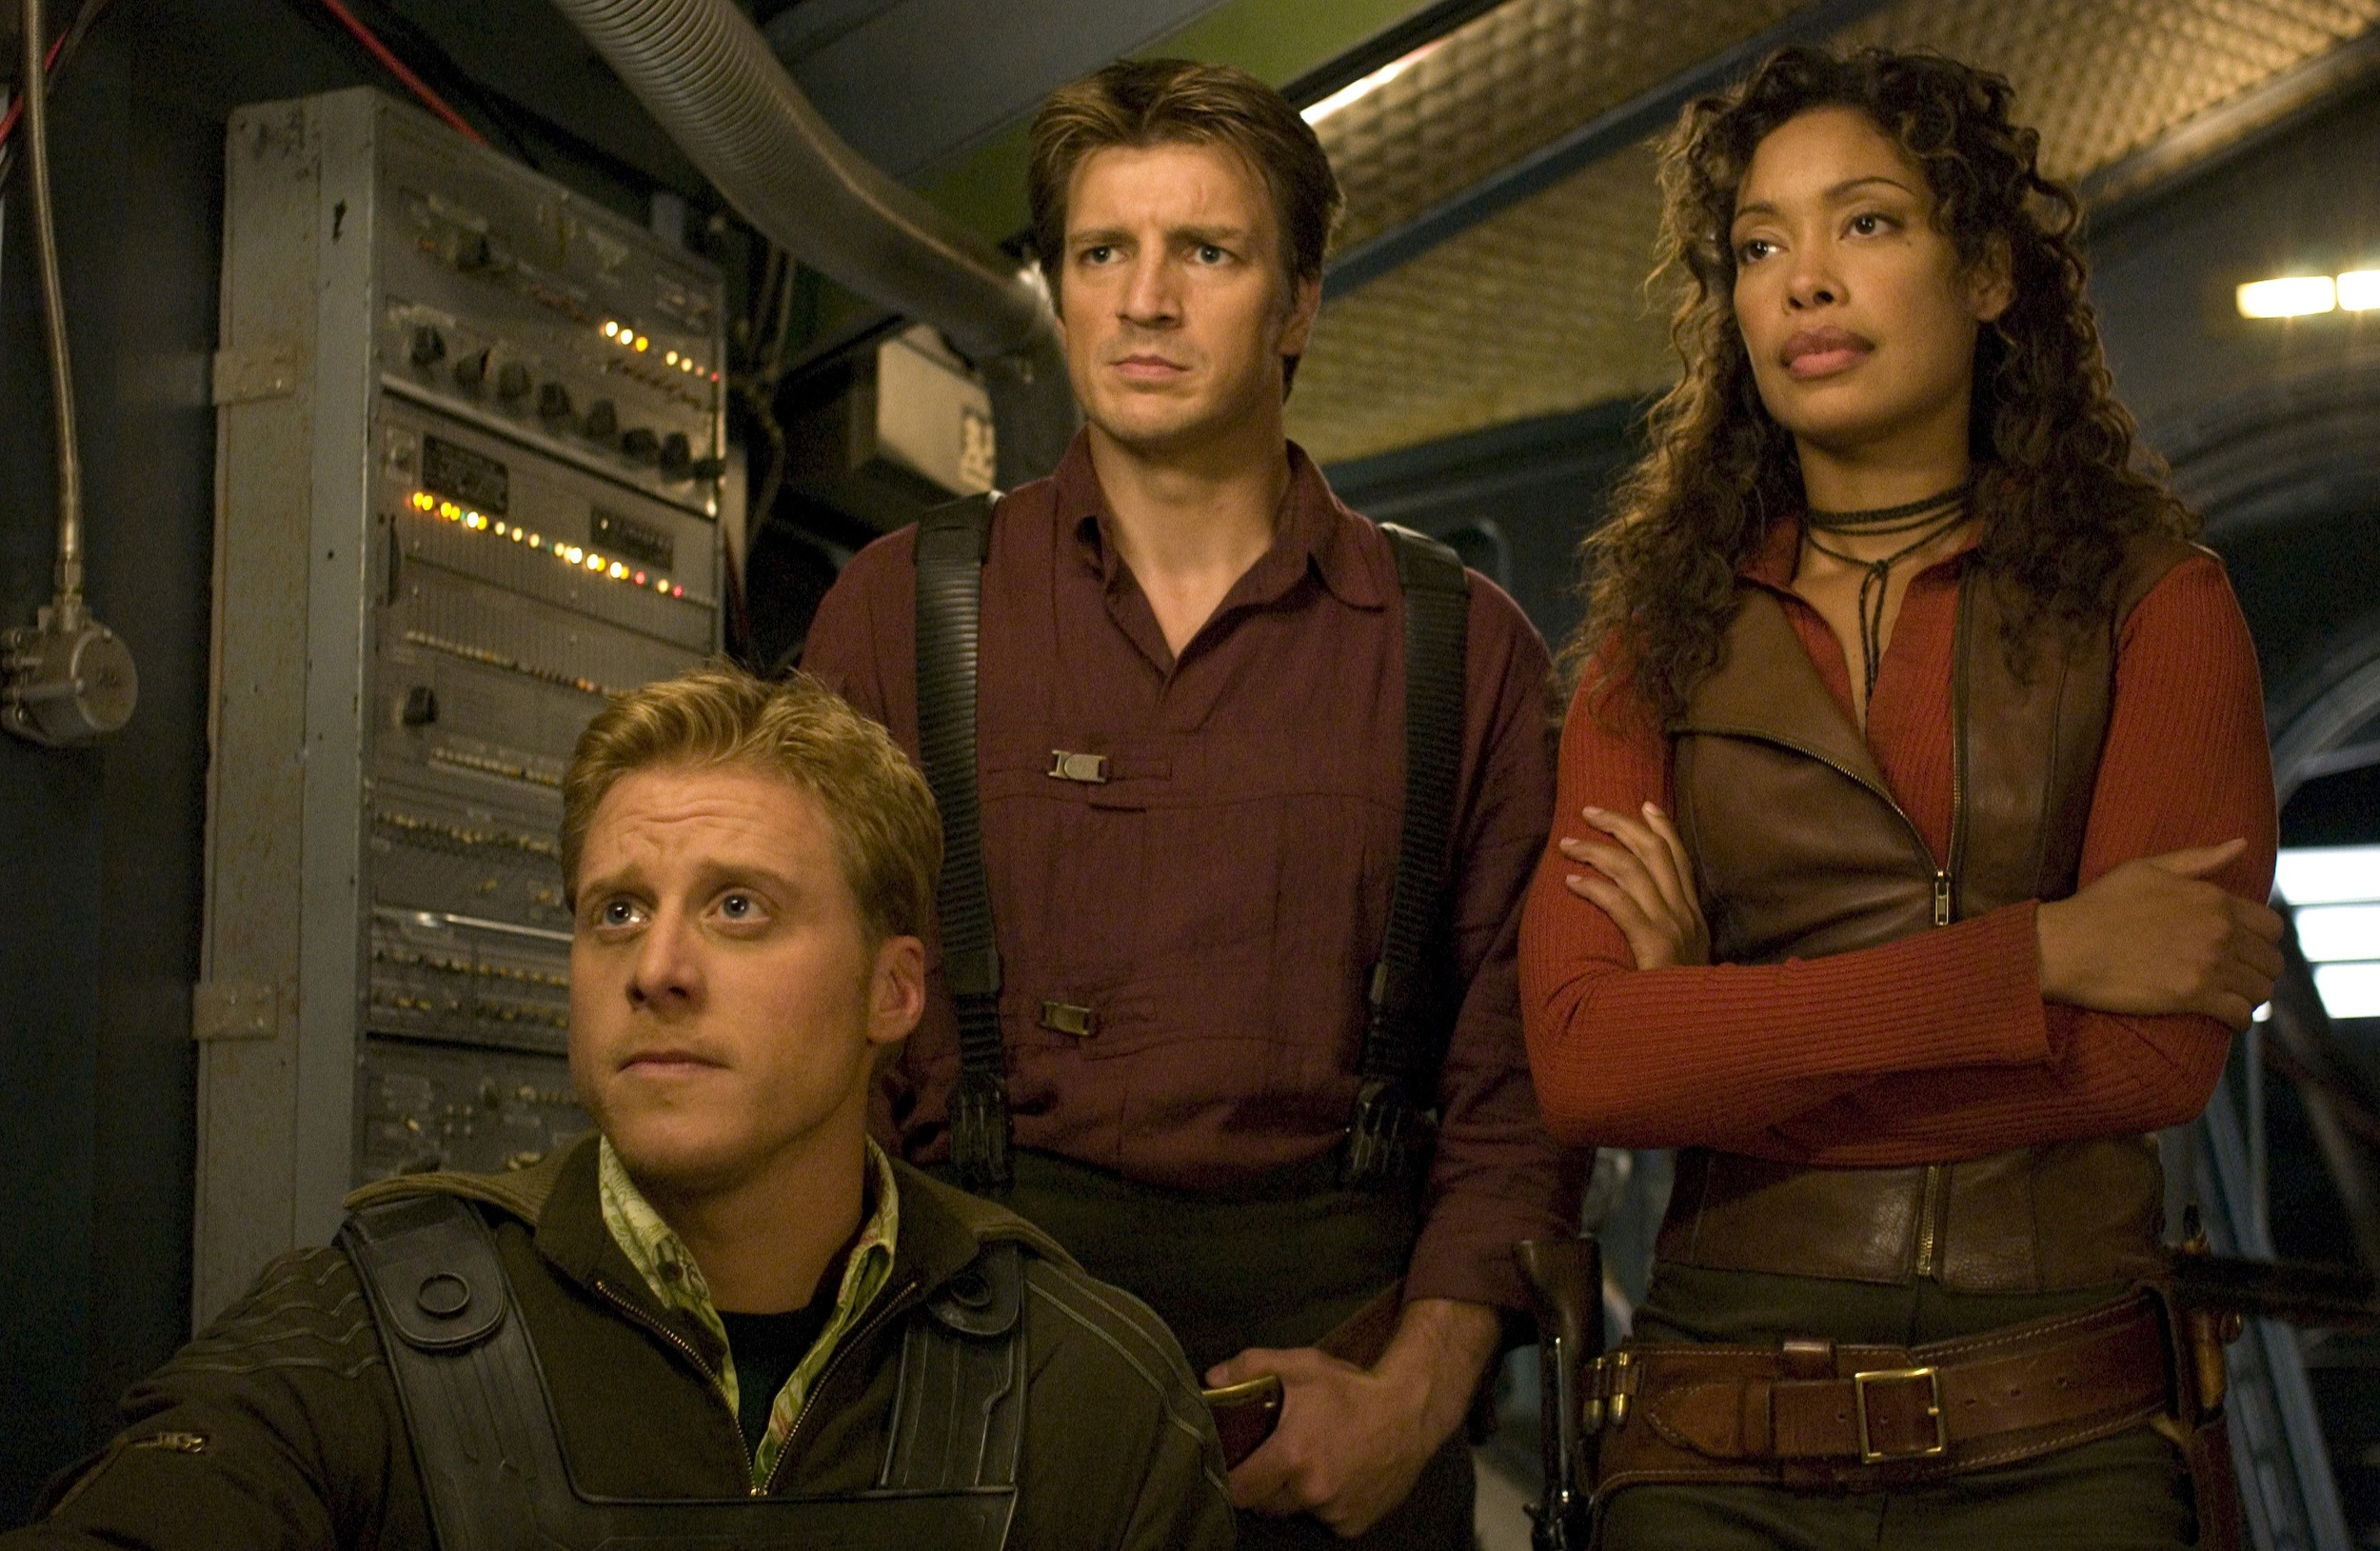 L-R:Alan Tudyk, Nathan Fillion, and Gina Torres in the movie SERENITY. photo by Sidney Baldwin. Universal Studios